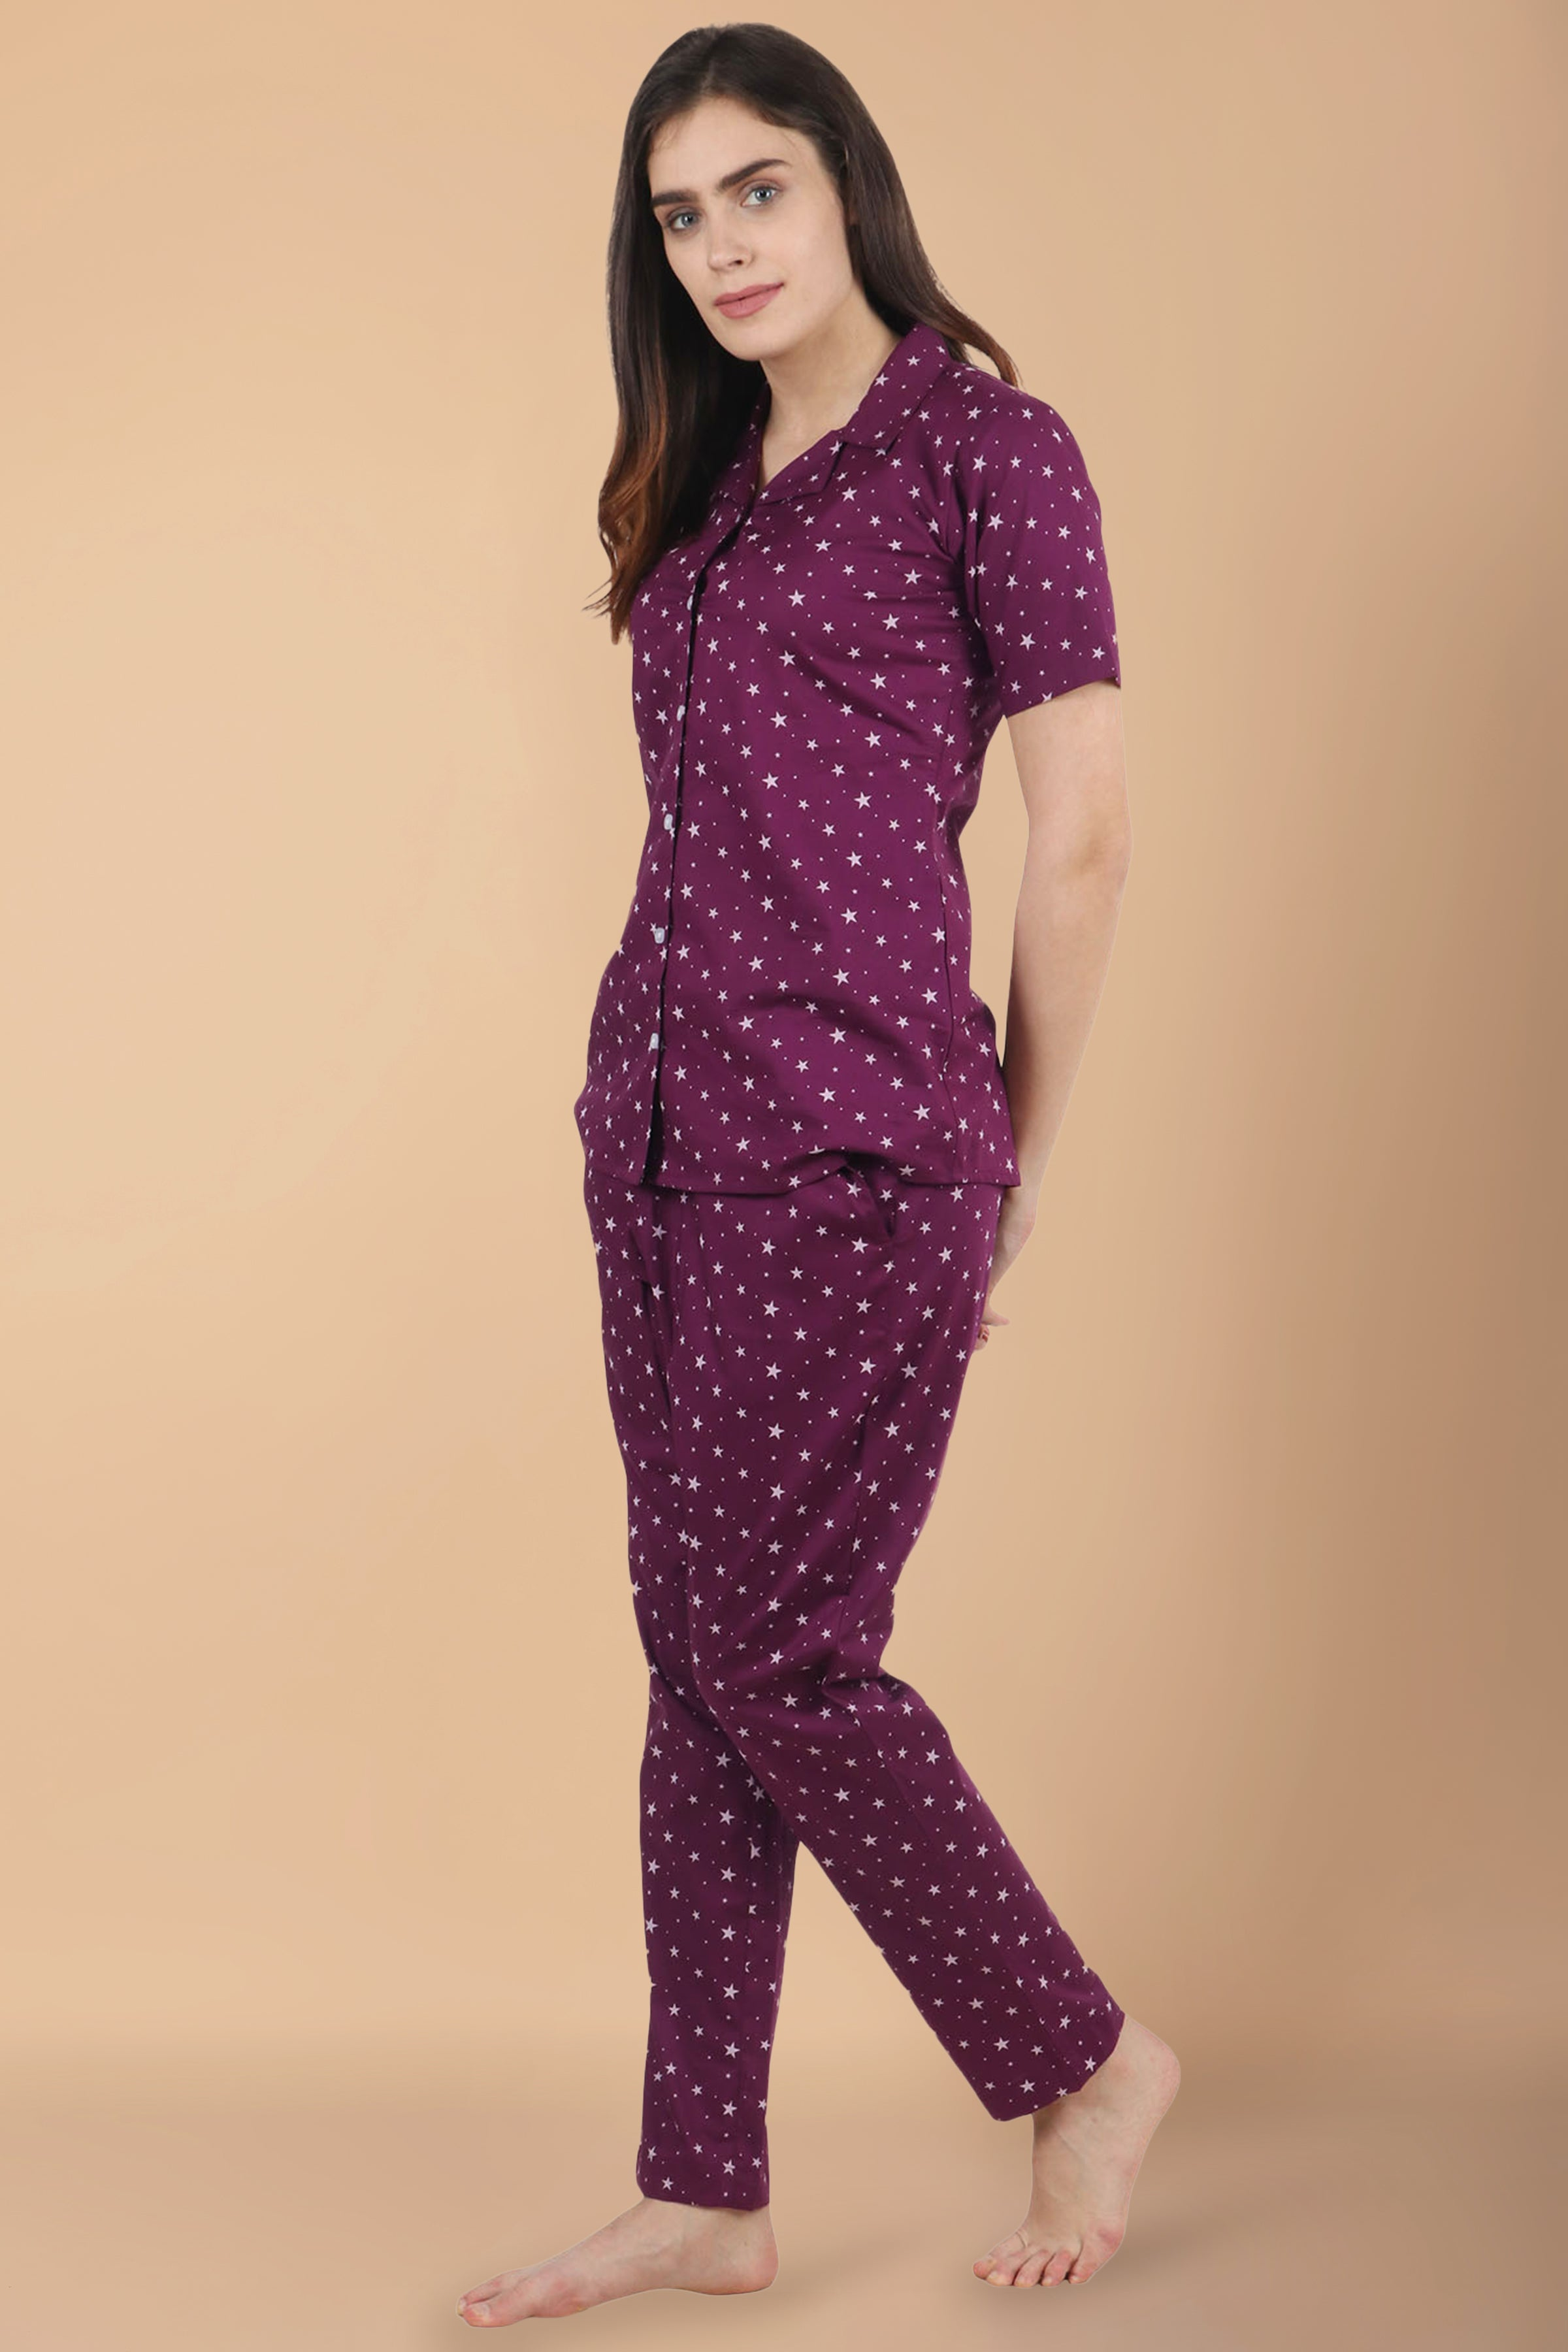 all size, all sizes night suits, apella, BEIGE, best online store, BLUE, COLLAR, cotton night suit, DOUBLE POCKETS, LEMON, lounge wear suits, Mustard, nigt suits online, Peach, PINK, plus siz